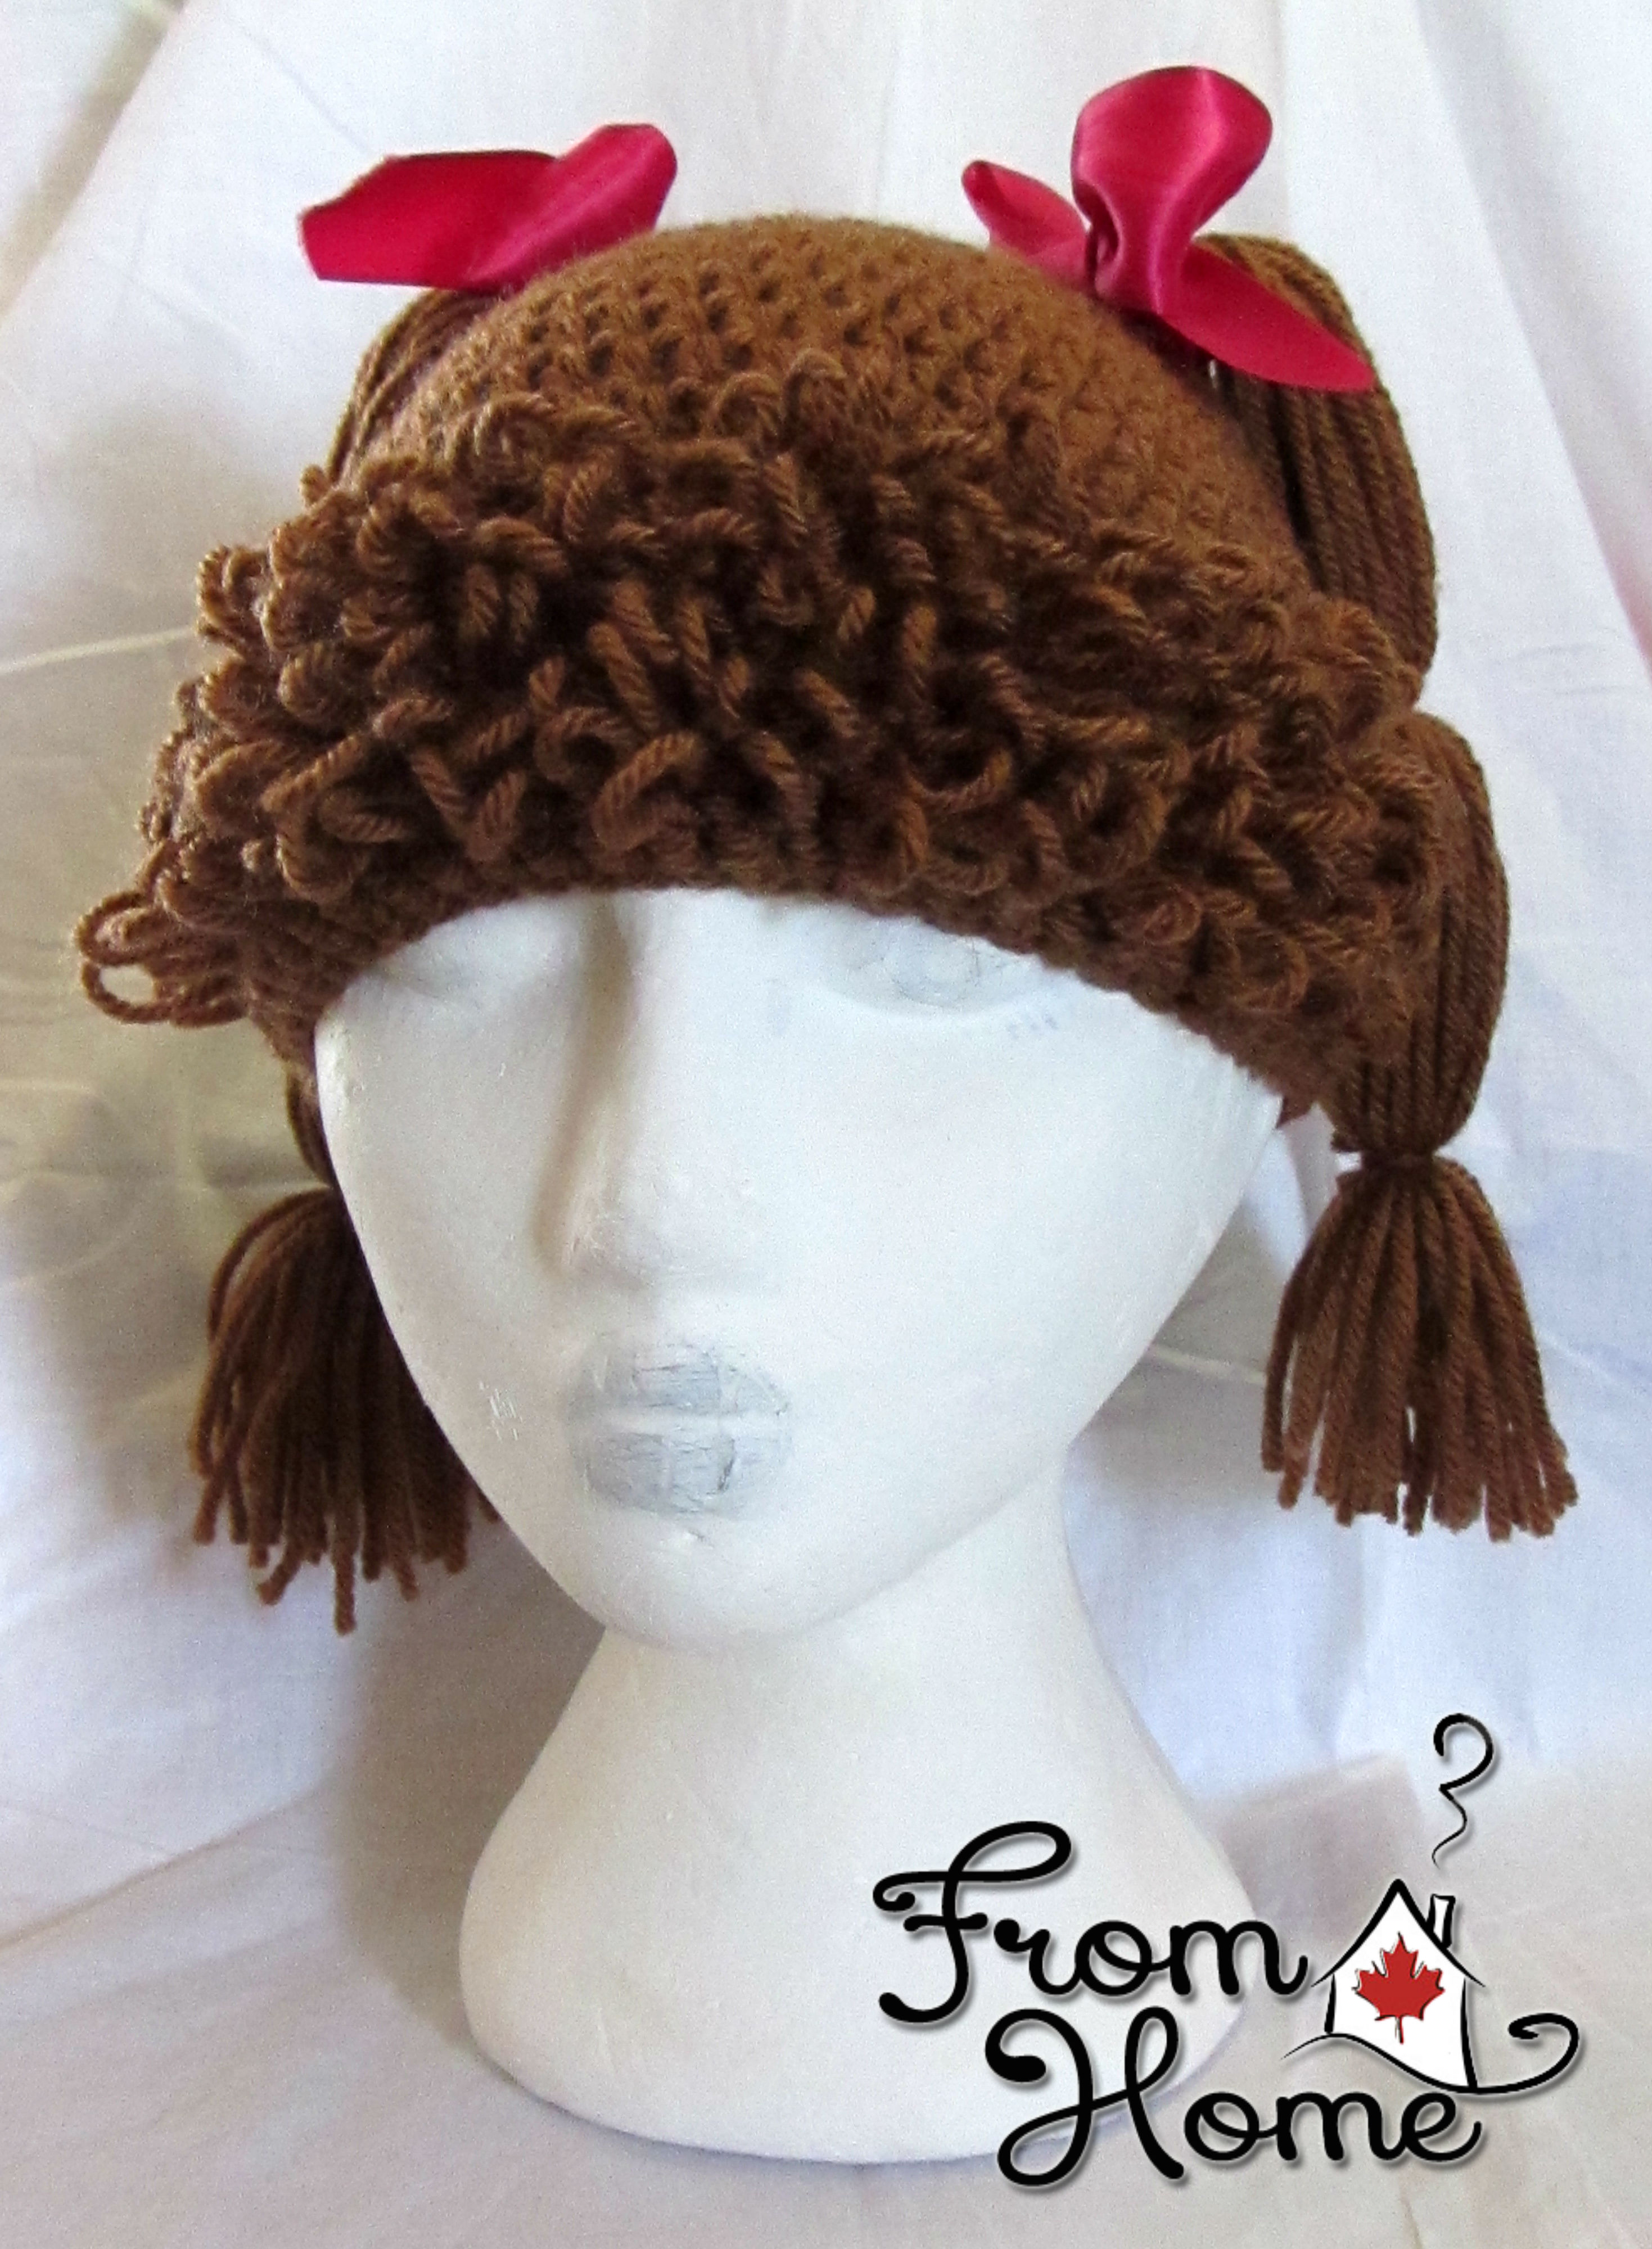 Cabbage Patch Hat Tutorial | From Home Crochet